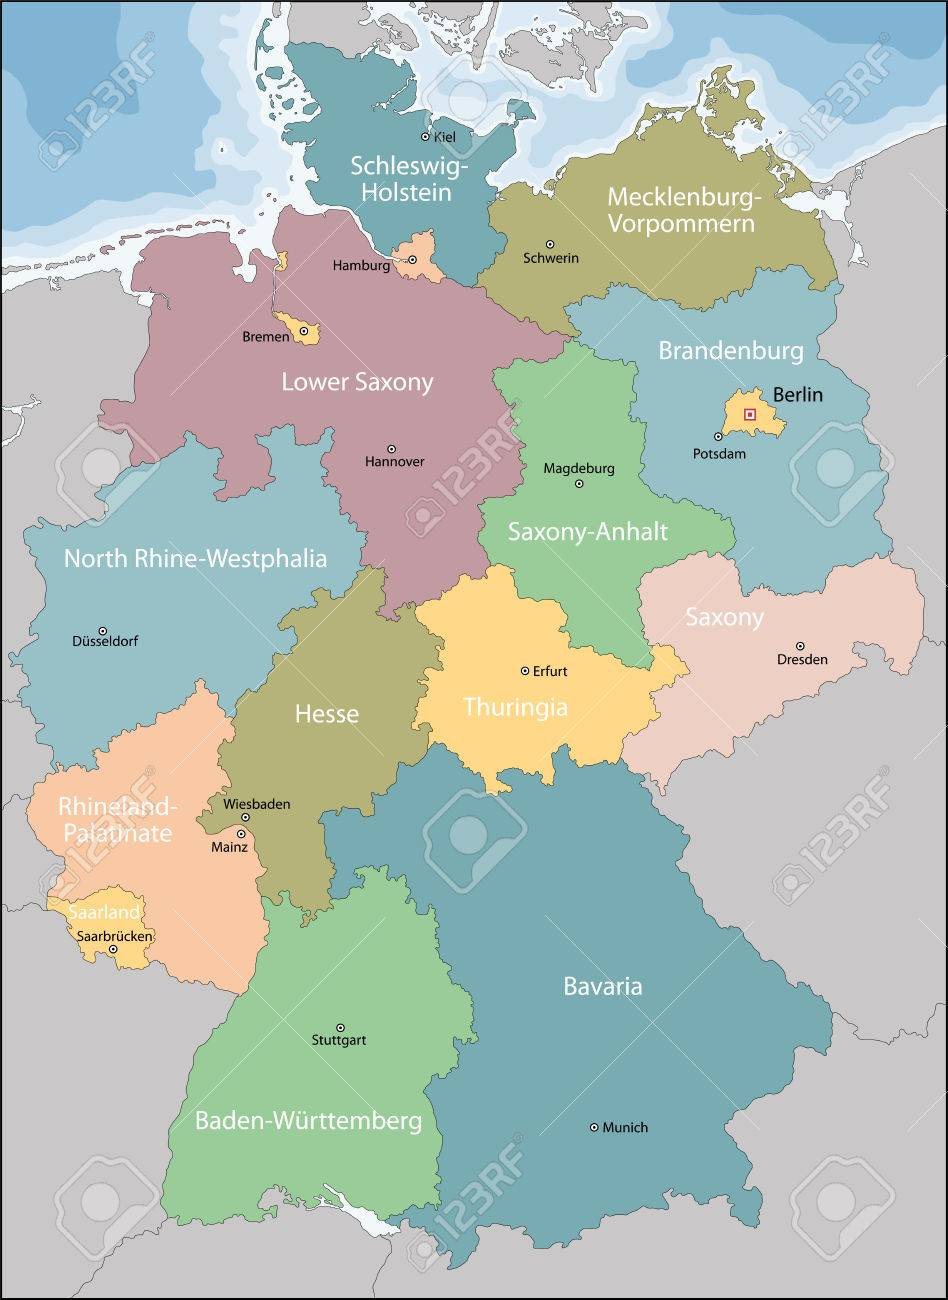 Regions Of Germany Map.Germany Map With Regions And Main Cities Royalty Free Cliparts